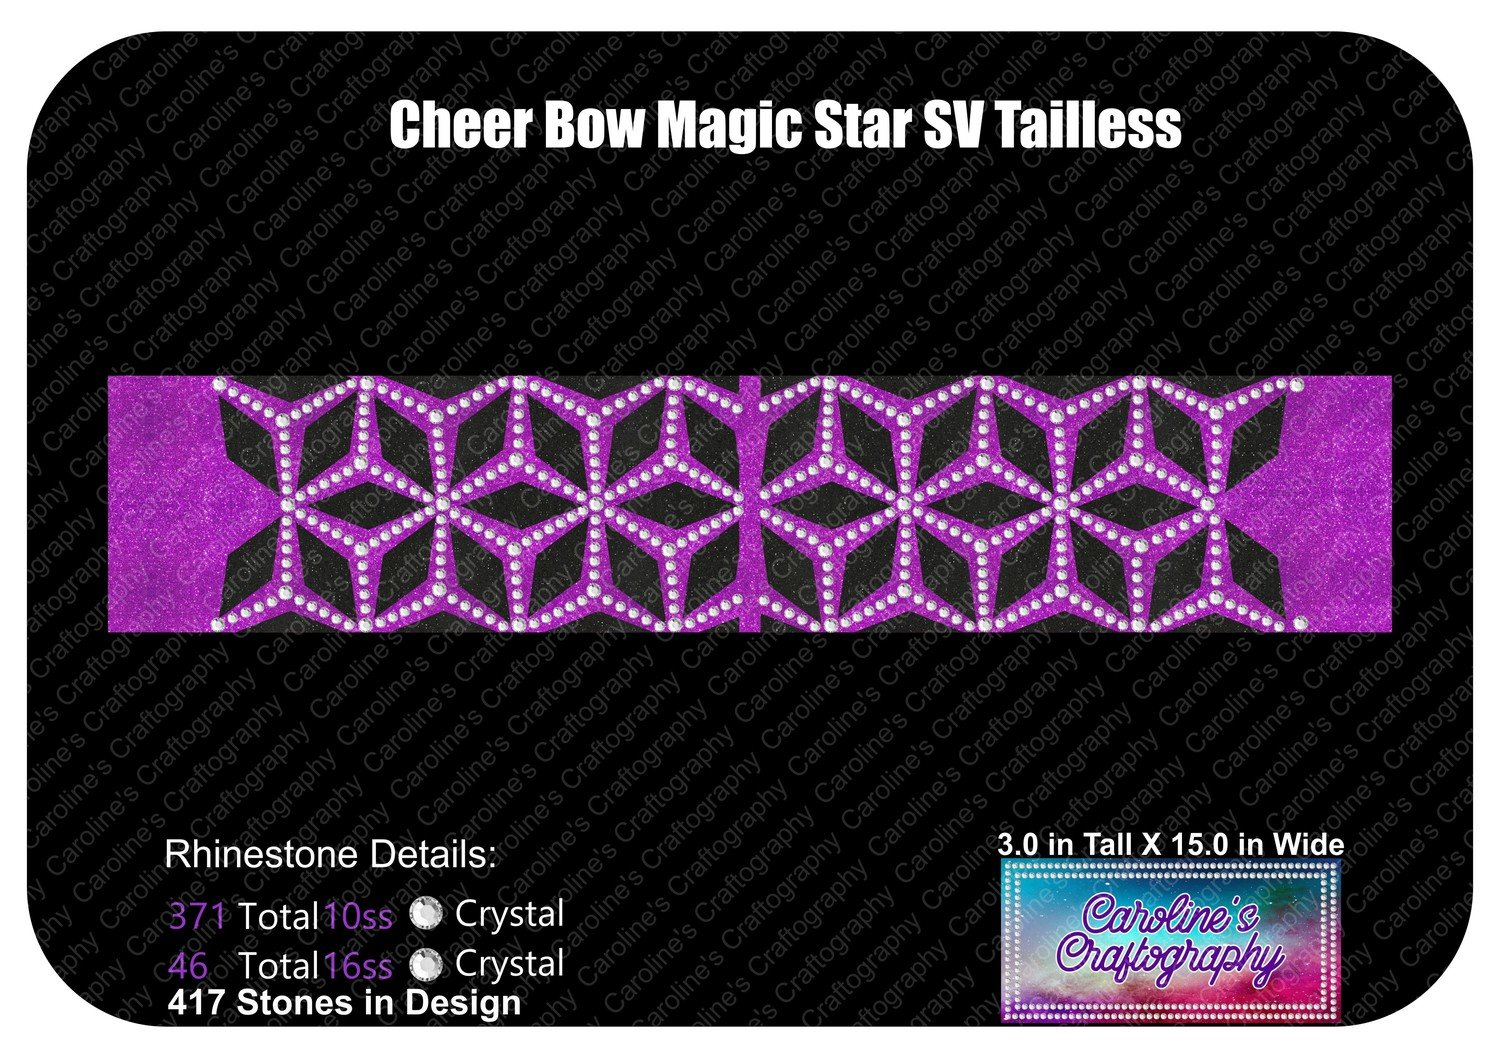 Tailless Cheer Bow Magic Star Stone Vinyl